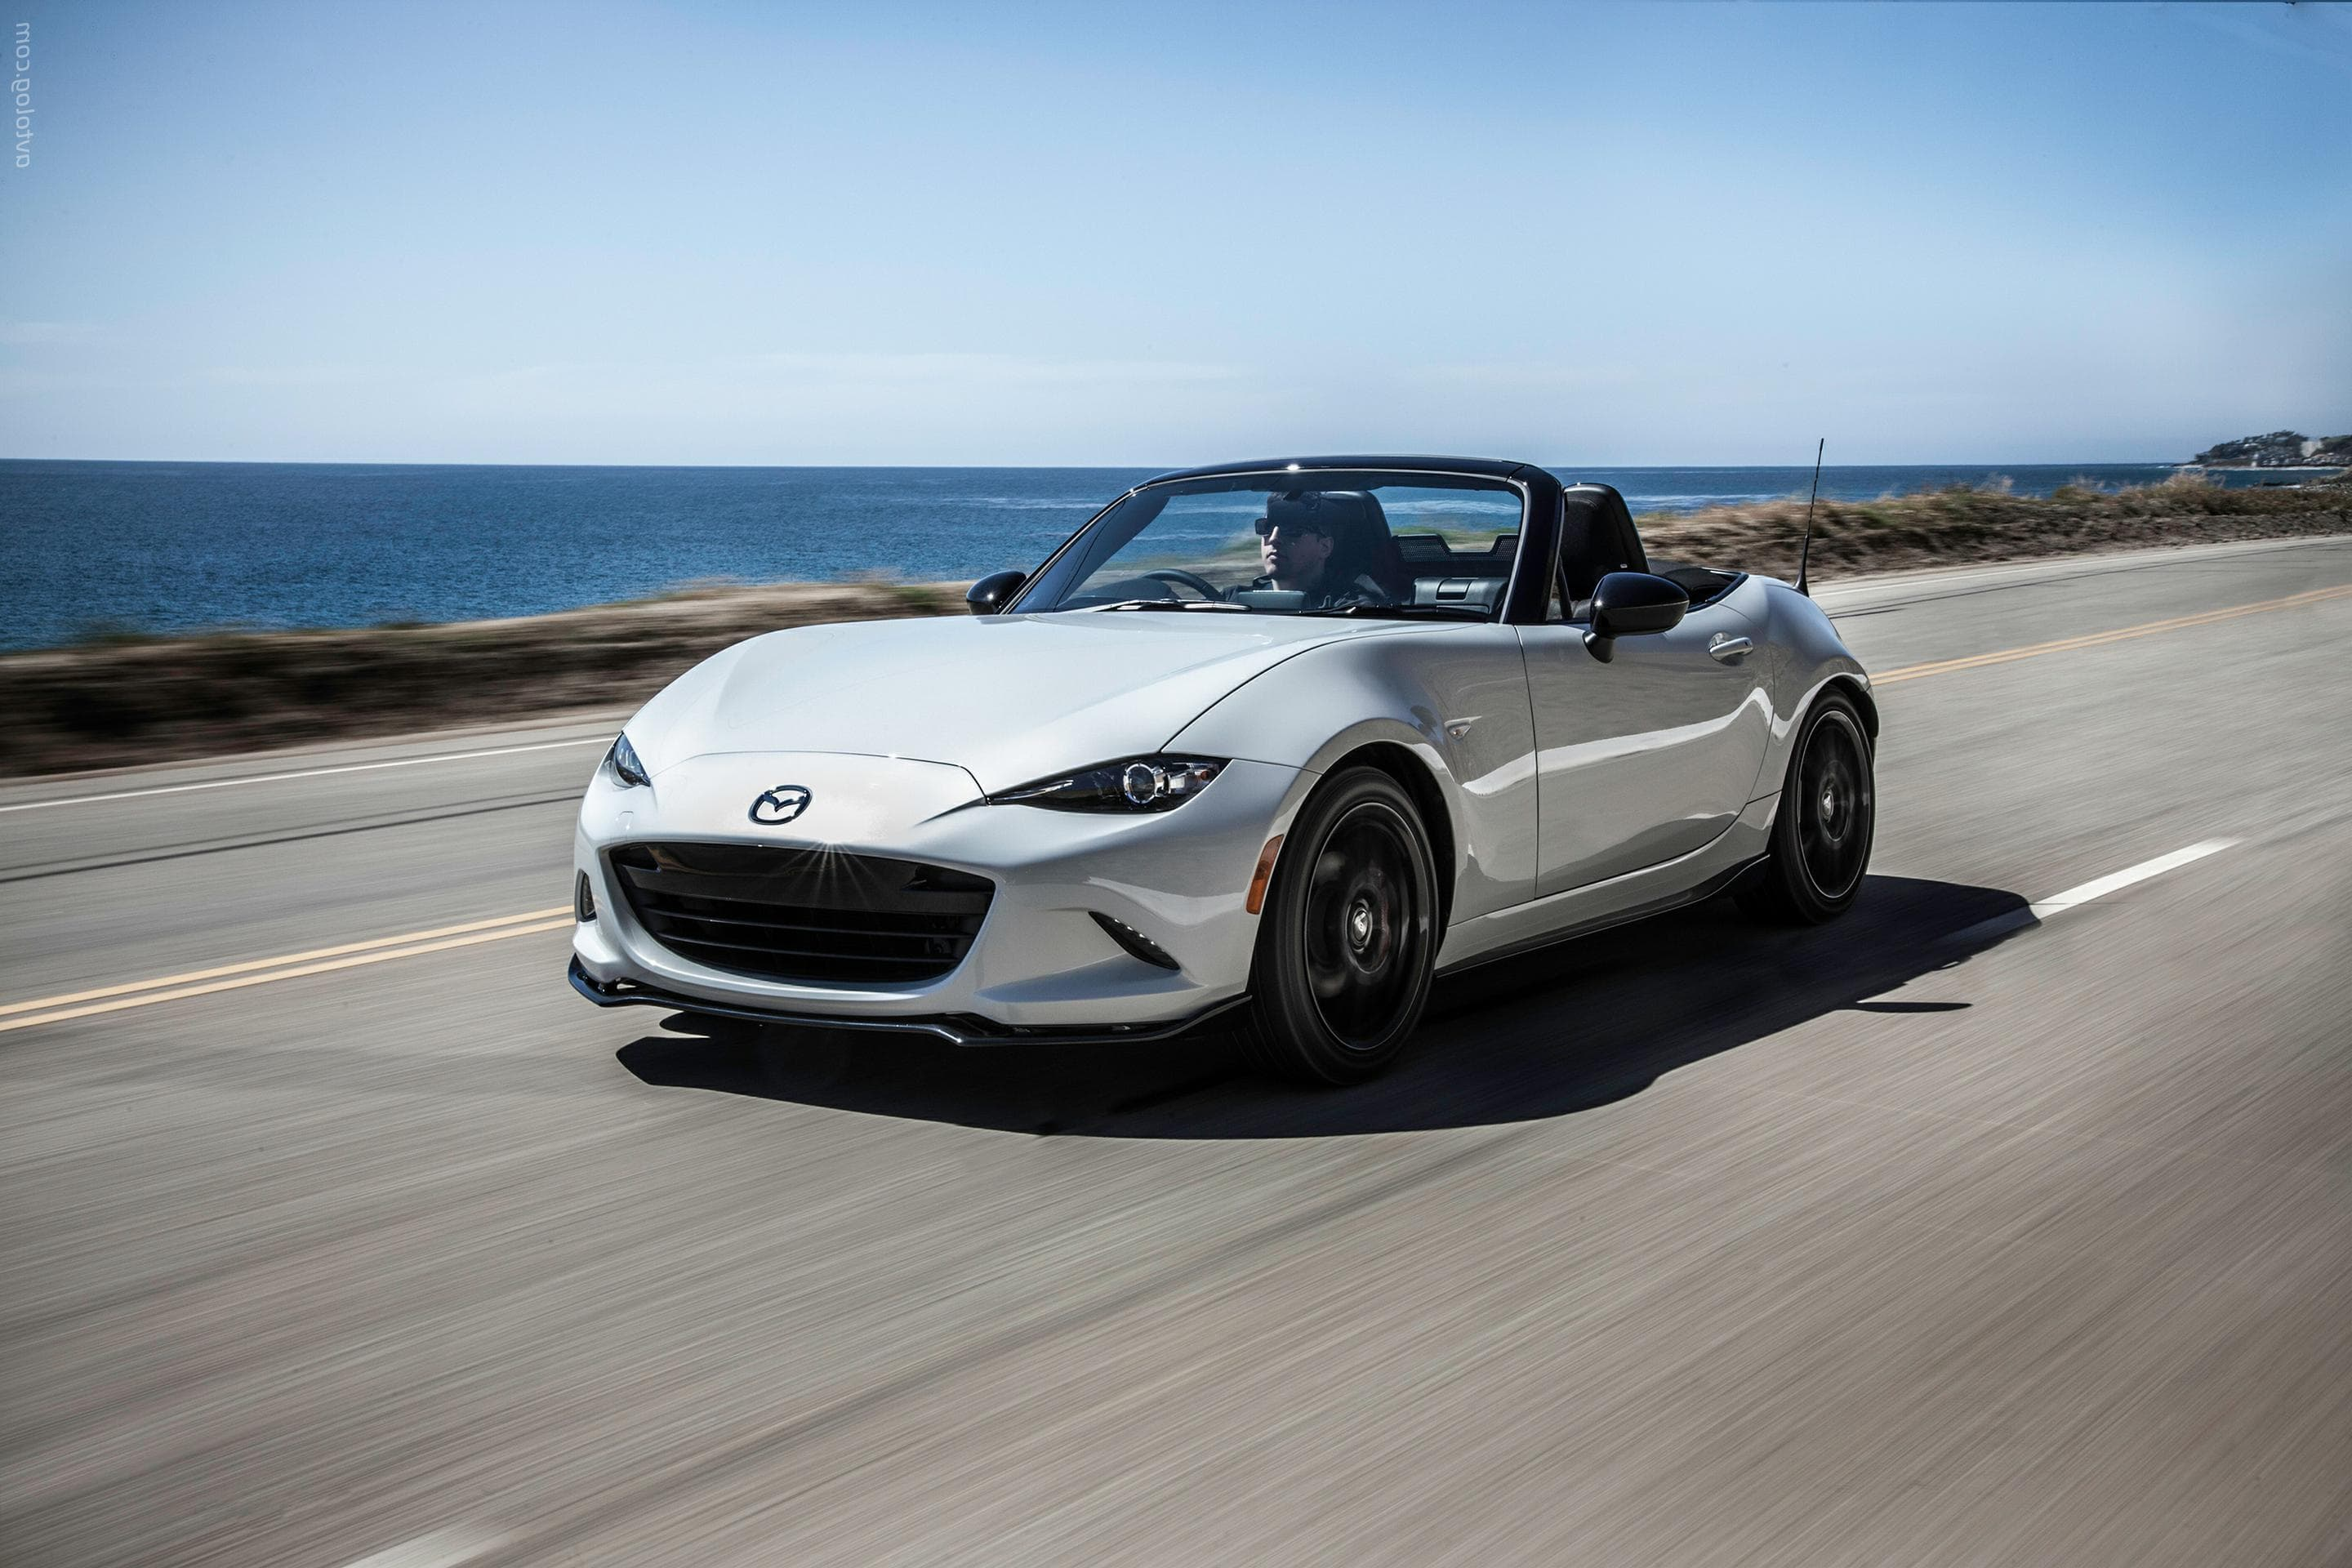 2016 Mazda MX-5 Miata wallpapers High Quality Resolution Download